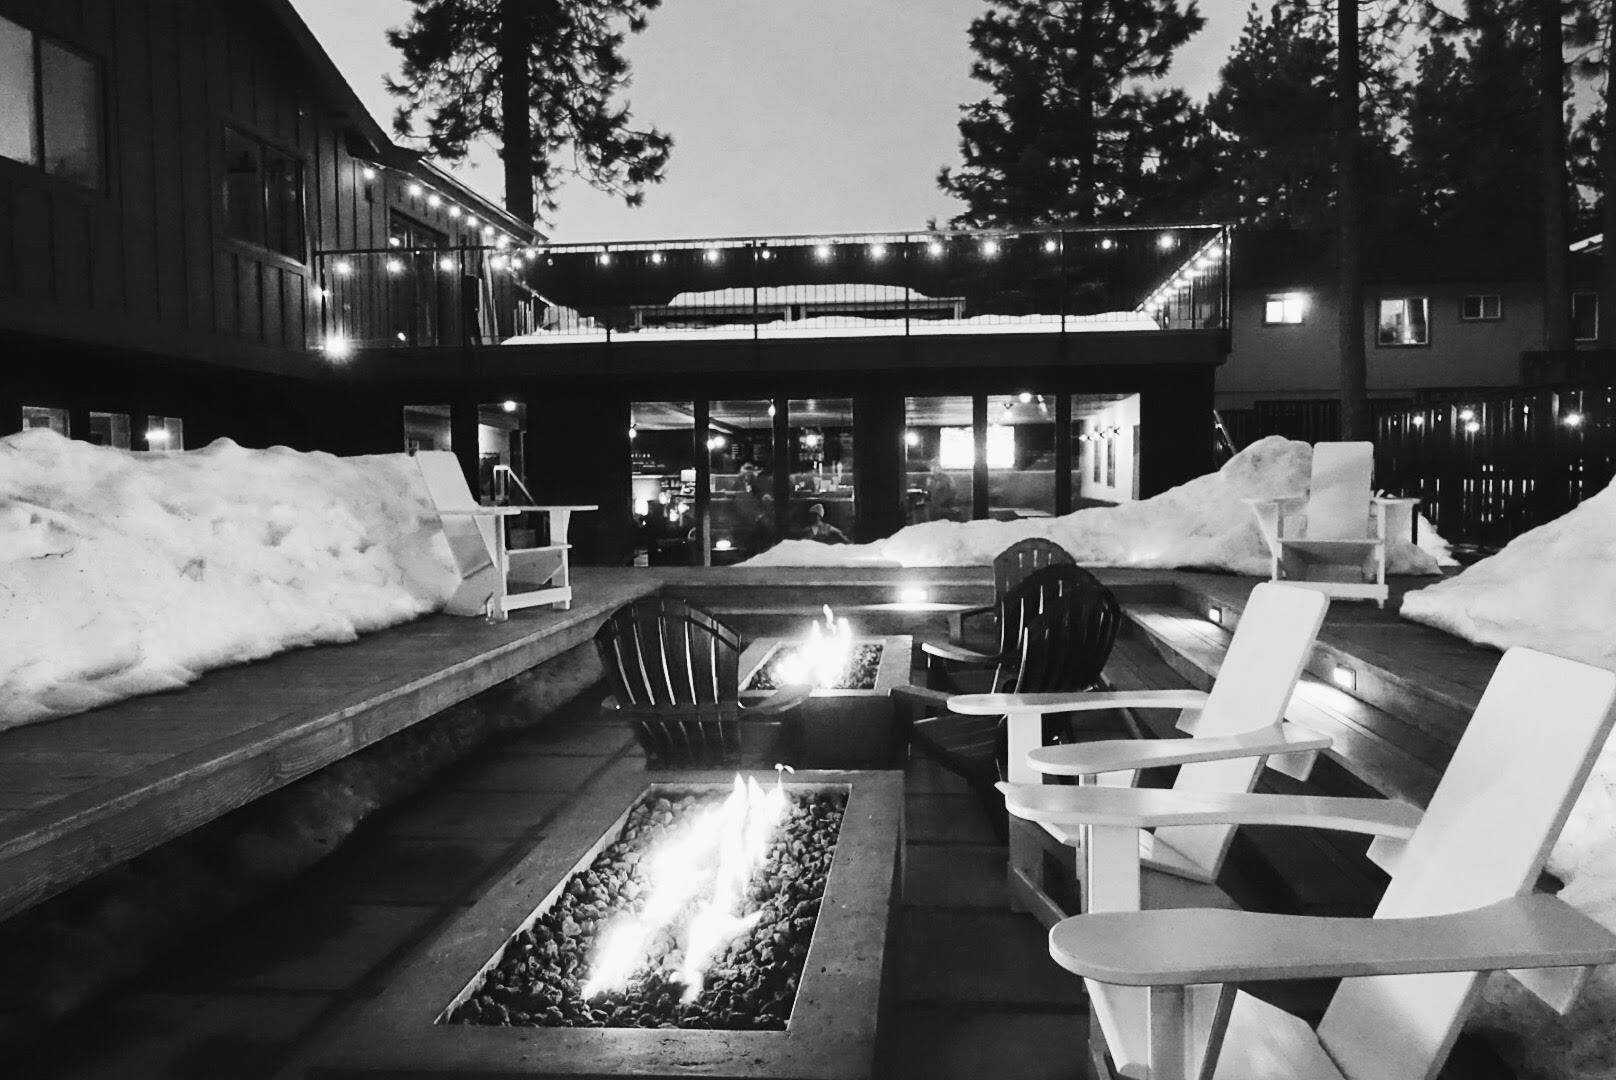 coachman hotel south lake tahoe getaway